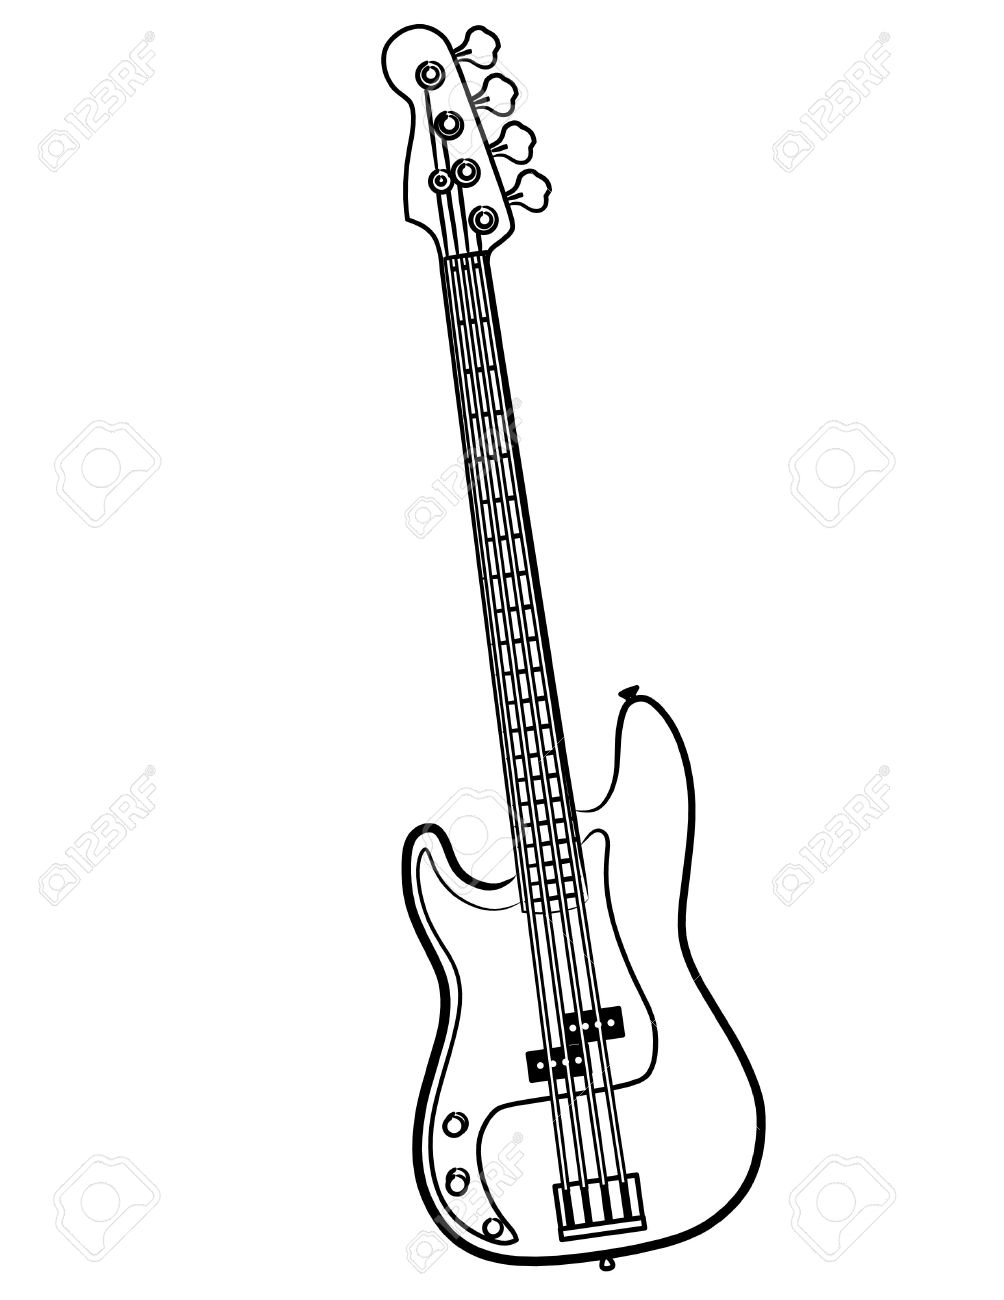 1004x1300 Simple Drawing Of A Guitar A Simple Electric Bass Guitar Line Art